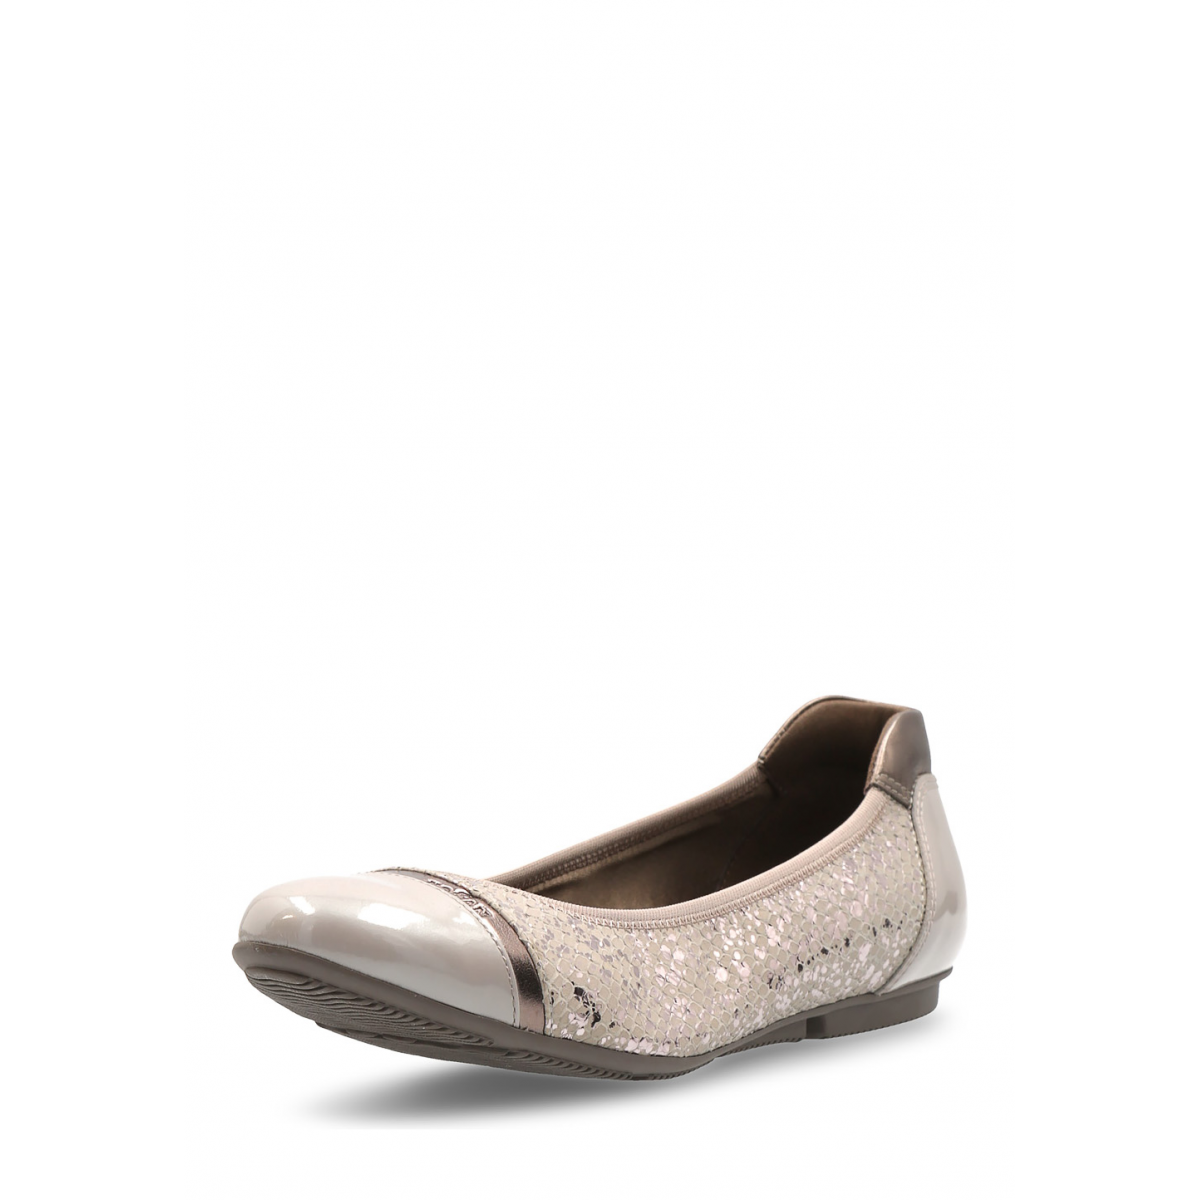 Primary image for Hogan Womens Ballerina Beige HXW1440712266TE47LL